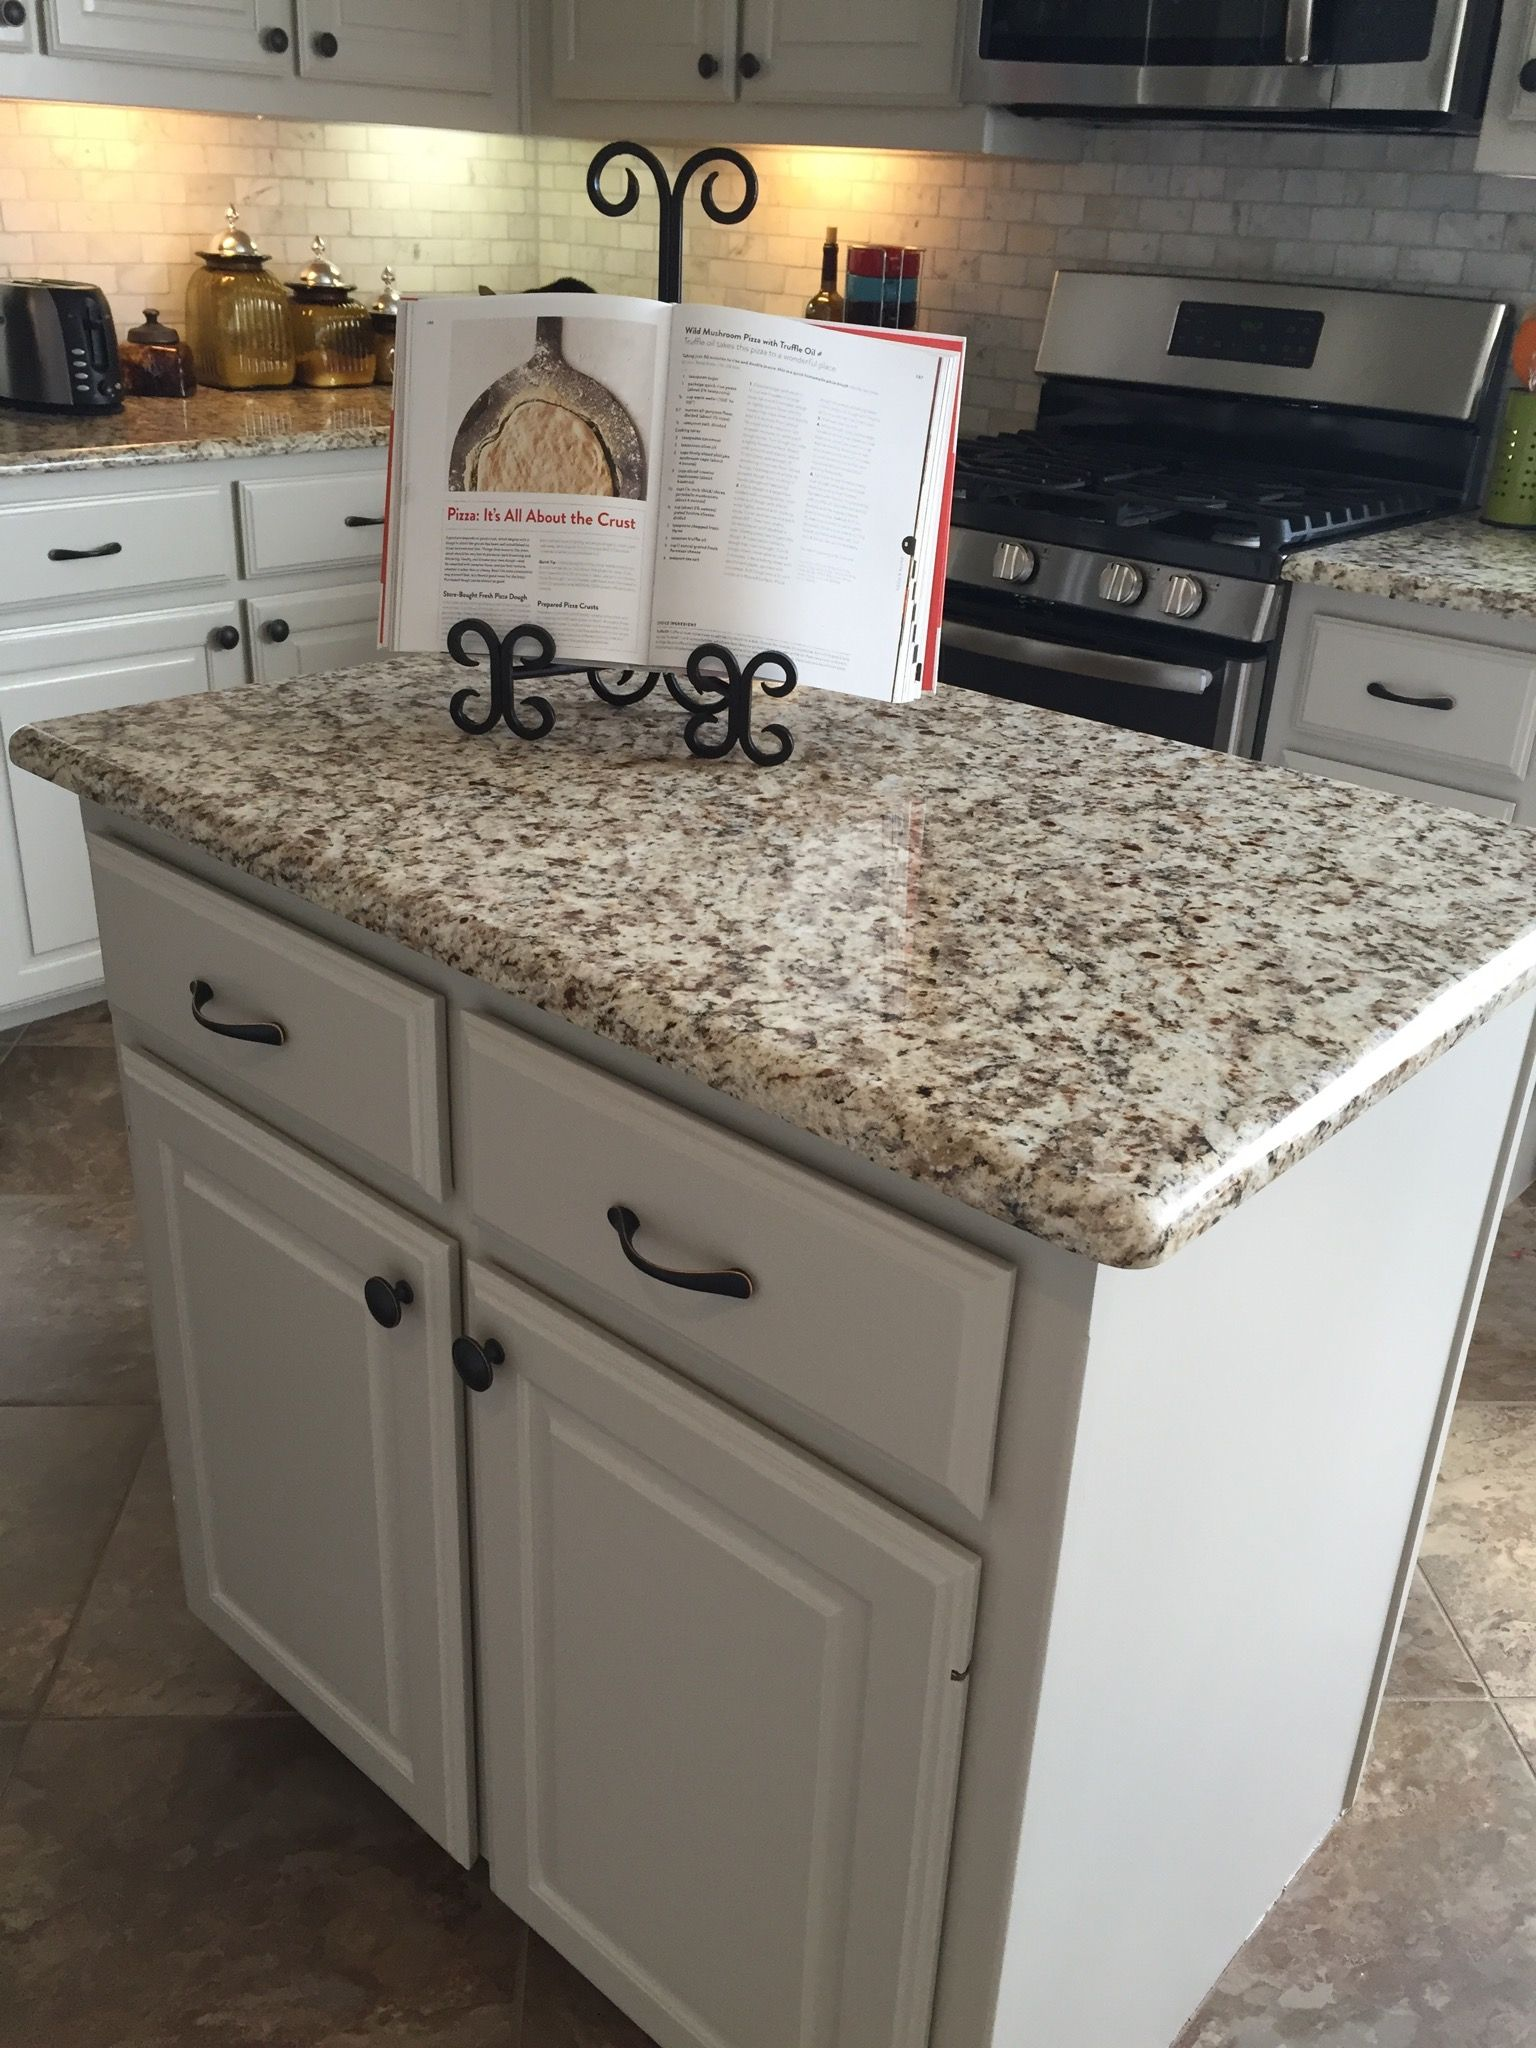 Delicieux Loved How The Granite And Subway Tile Turned Out In This Kitchen. Kitchen  Colour CombinationKitchen ...